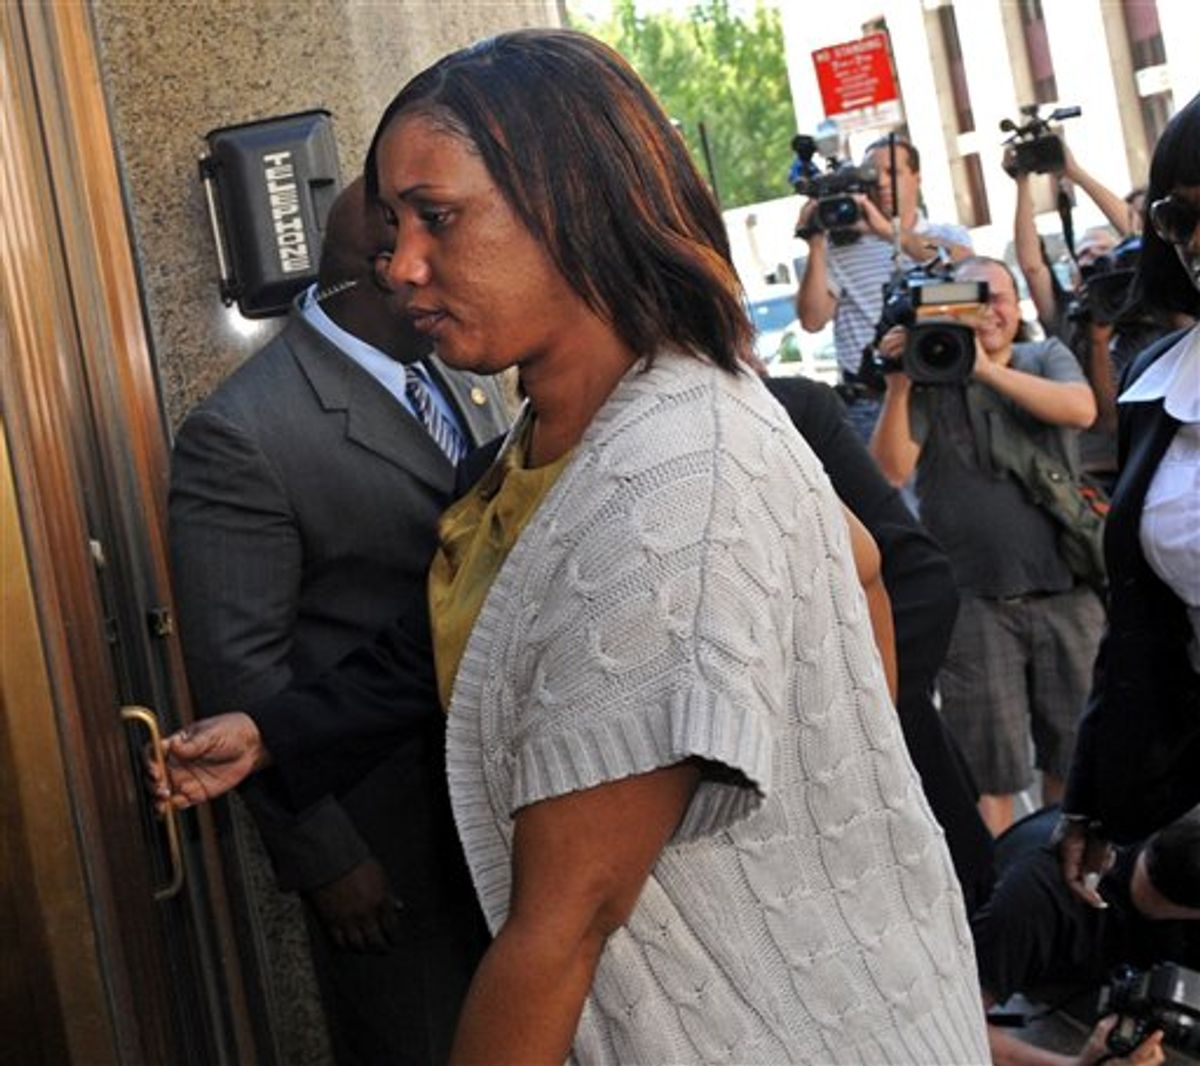 Hotel maid Nafissatou Diallo arrives at Manhattan criminal court for a meeting with New York City prosecutors investigating the sex assault case against Dominique Strauss-Kahn Wednesday, July 27, 2011, in New York. Diallo broke her silence in recent days with interviews in Newsweek and on a series of ABC News programs.  (AP Photo/ Louis Lanzano) (AP)